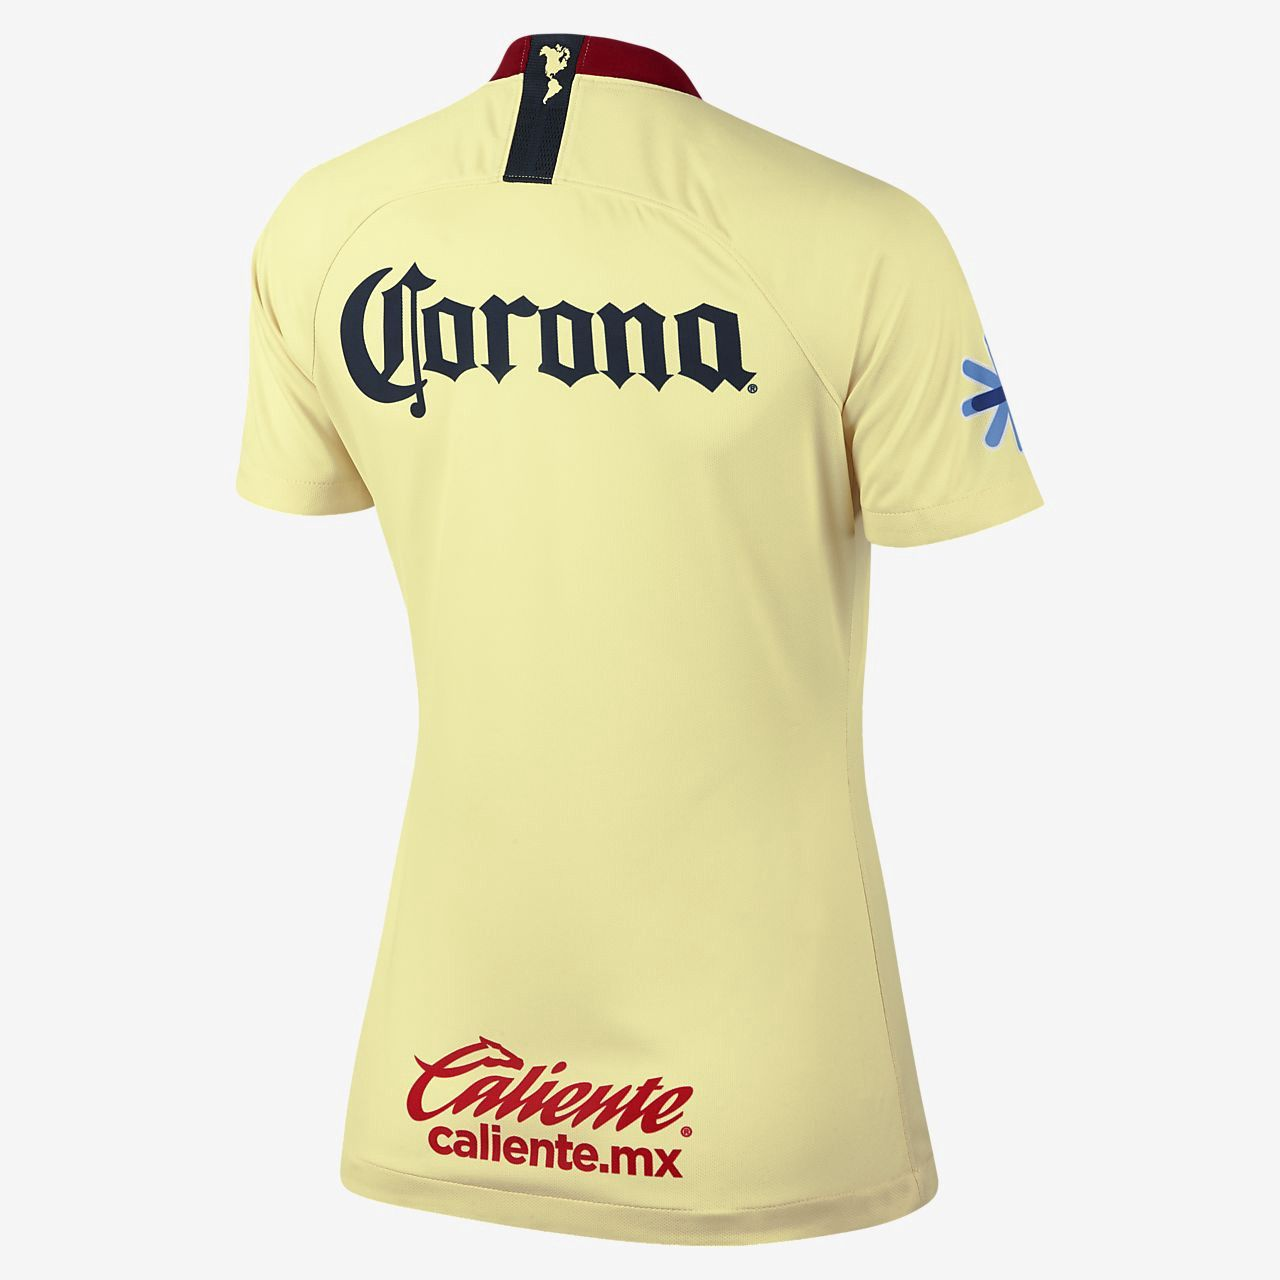 47a0e35cc Nike 2018 19 Club America Stadium Home Women s Soccer Jersey - Xl (16–18)  Navy